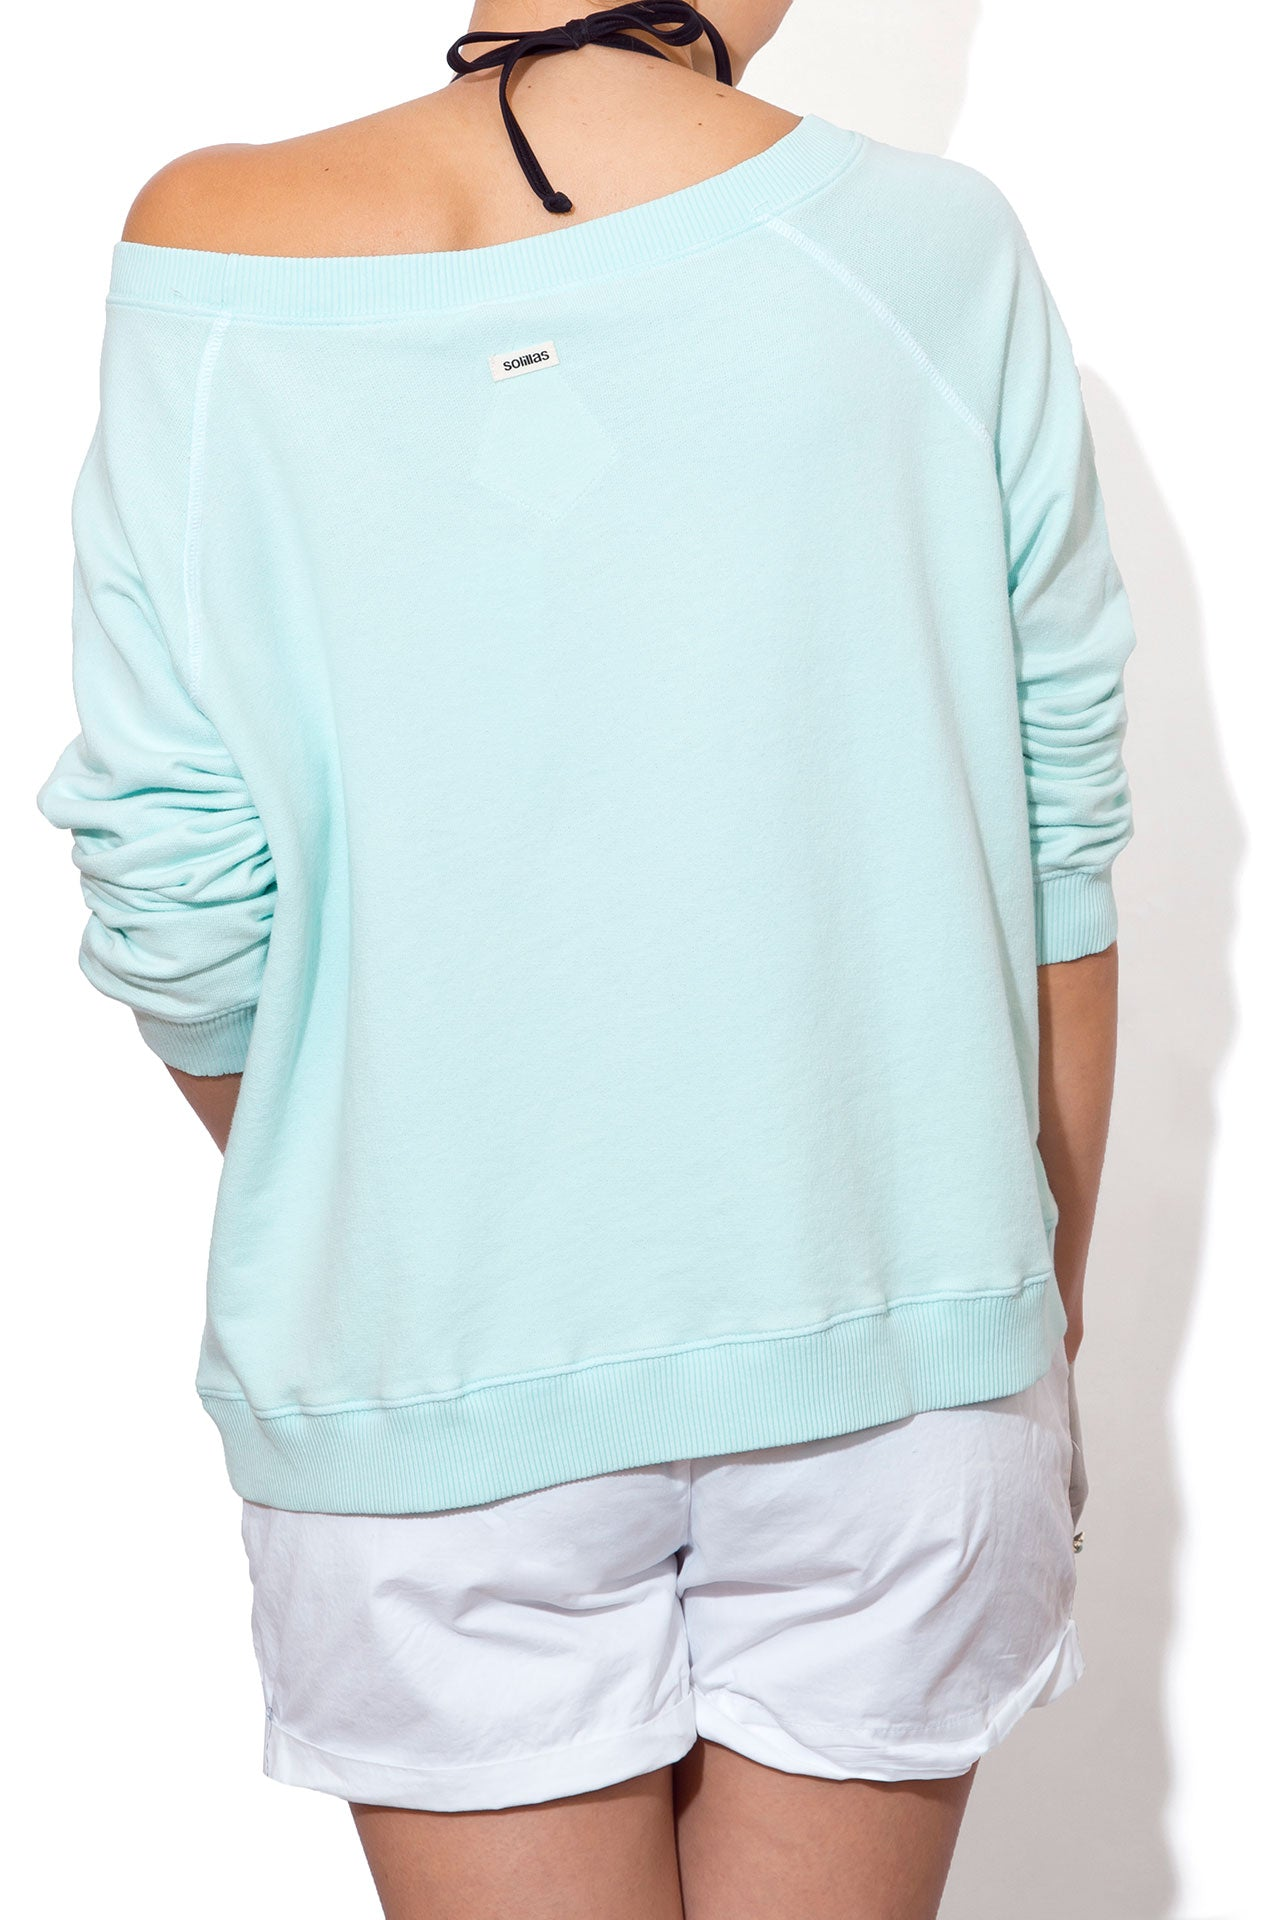 d657a50d4e Women's Bagged Oversized Sweatshirt | Beach Boho Aqua Blue ...